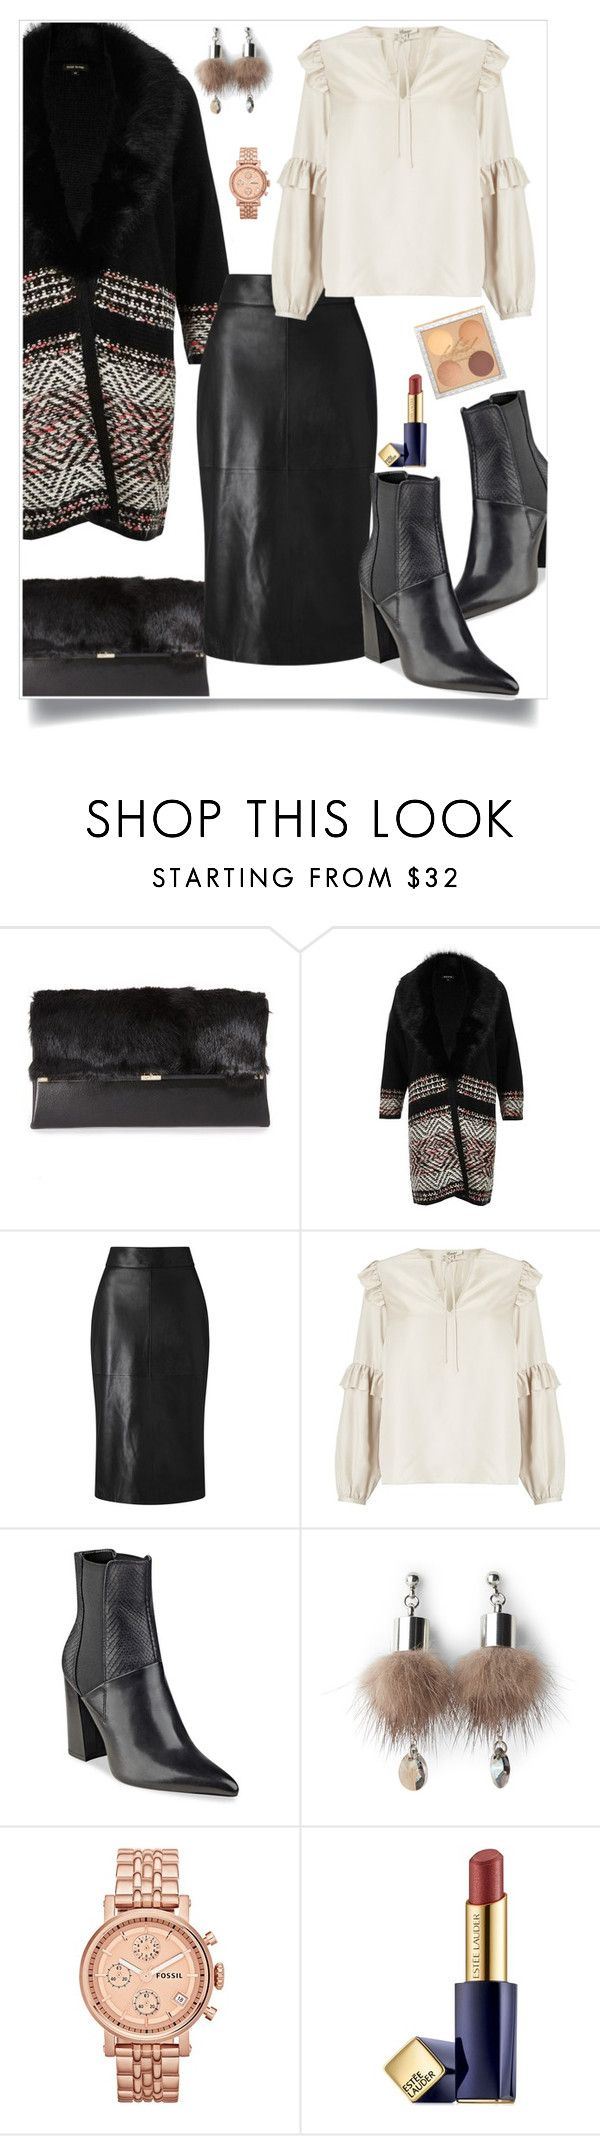 """""""Lady"""" by hani-bgd ❤ liked on Polyvore featuring Diane Von Furstenberg, River Island, Somerset by Alice Temperley, GUESS, Simons, FOSSIL and Estée Lauder"""